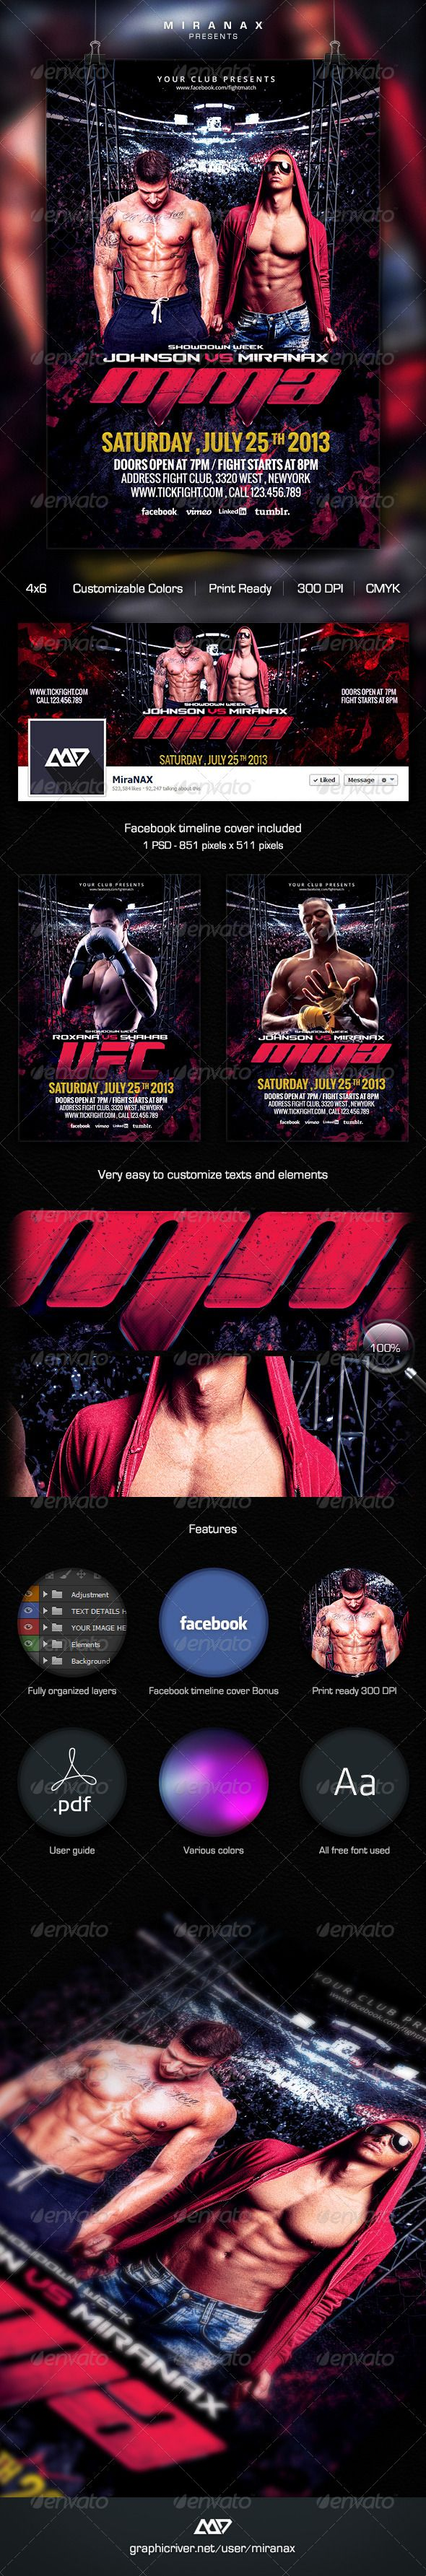 Fight  Mma  Ufc Night Flyer Template  Ufc Night Flyer Template